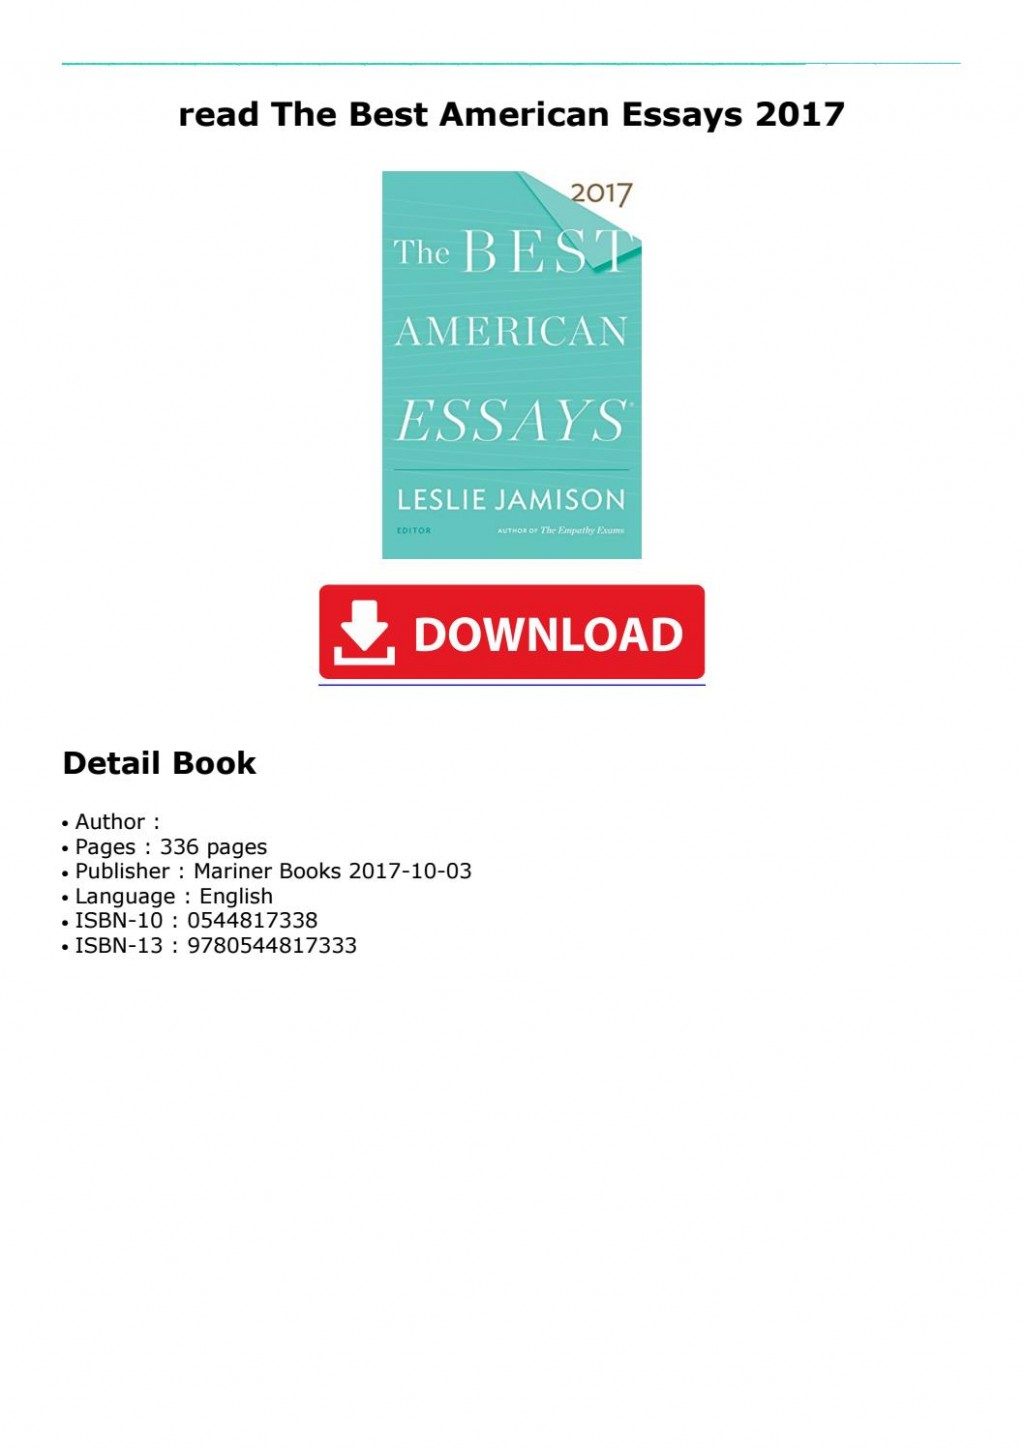 005 Best American Essays Essay Example Page 1 Astounding 2017 Submissions Pdf Free Download Large